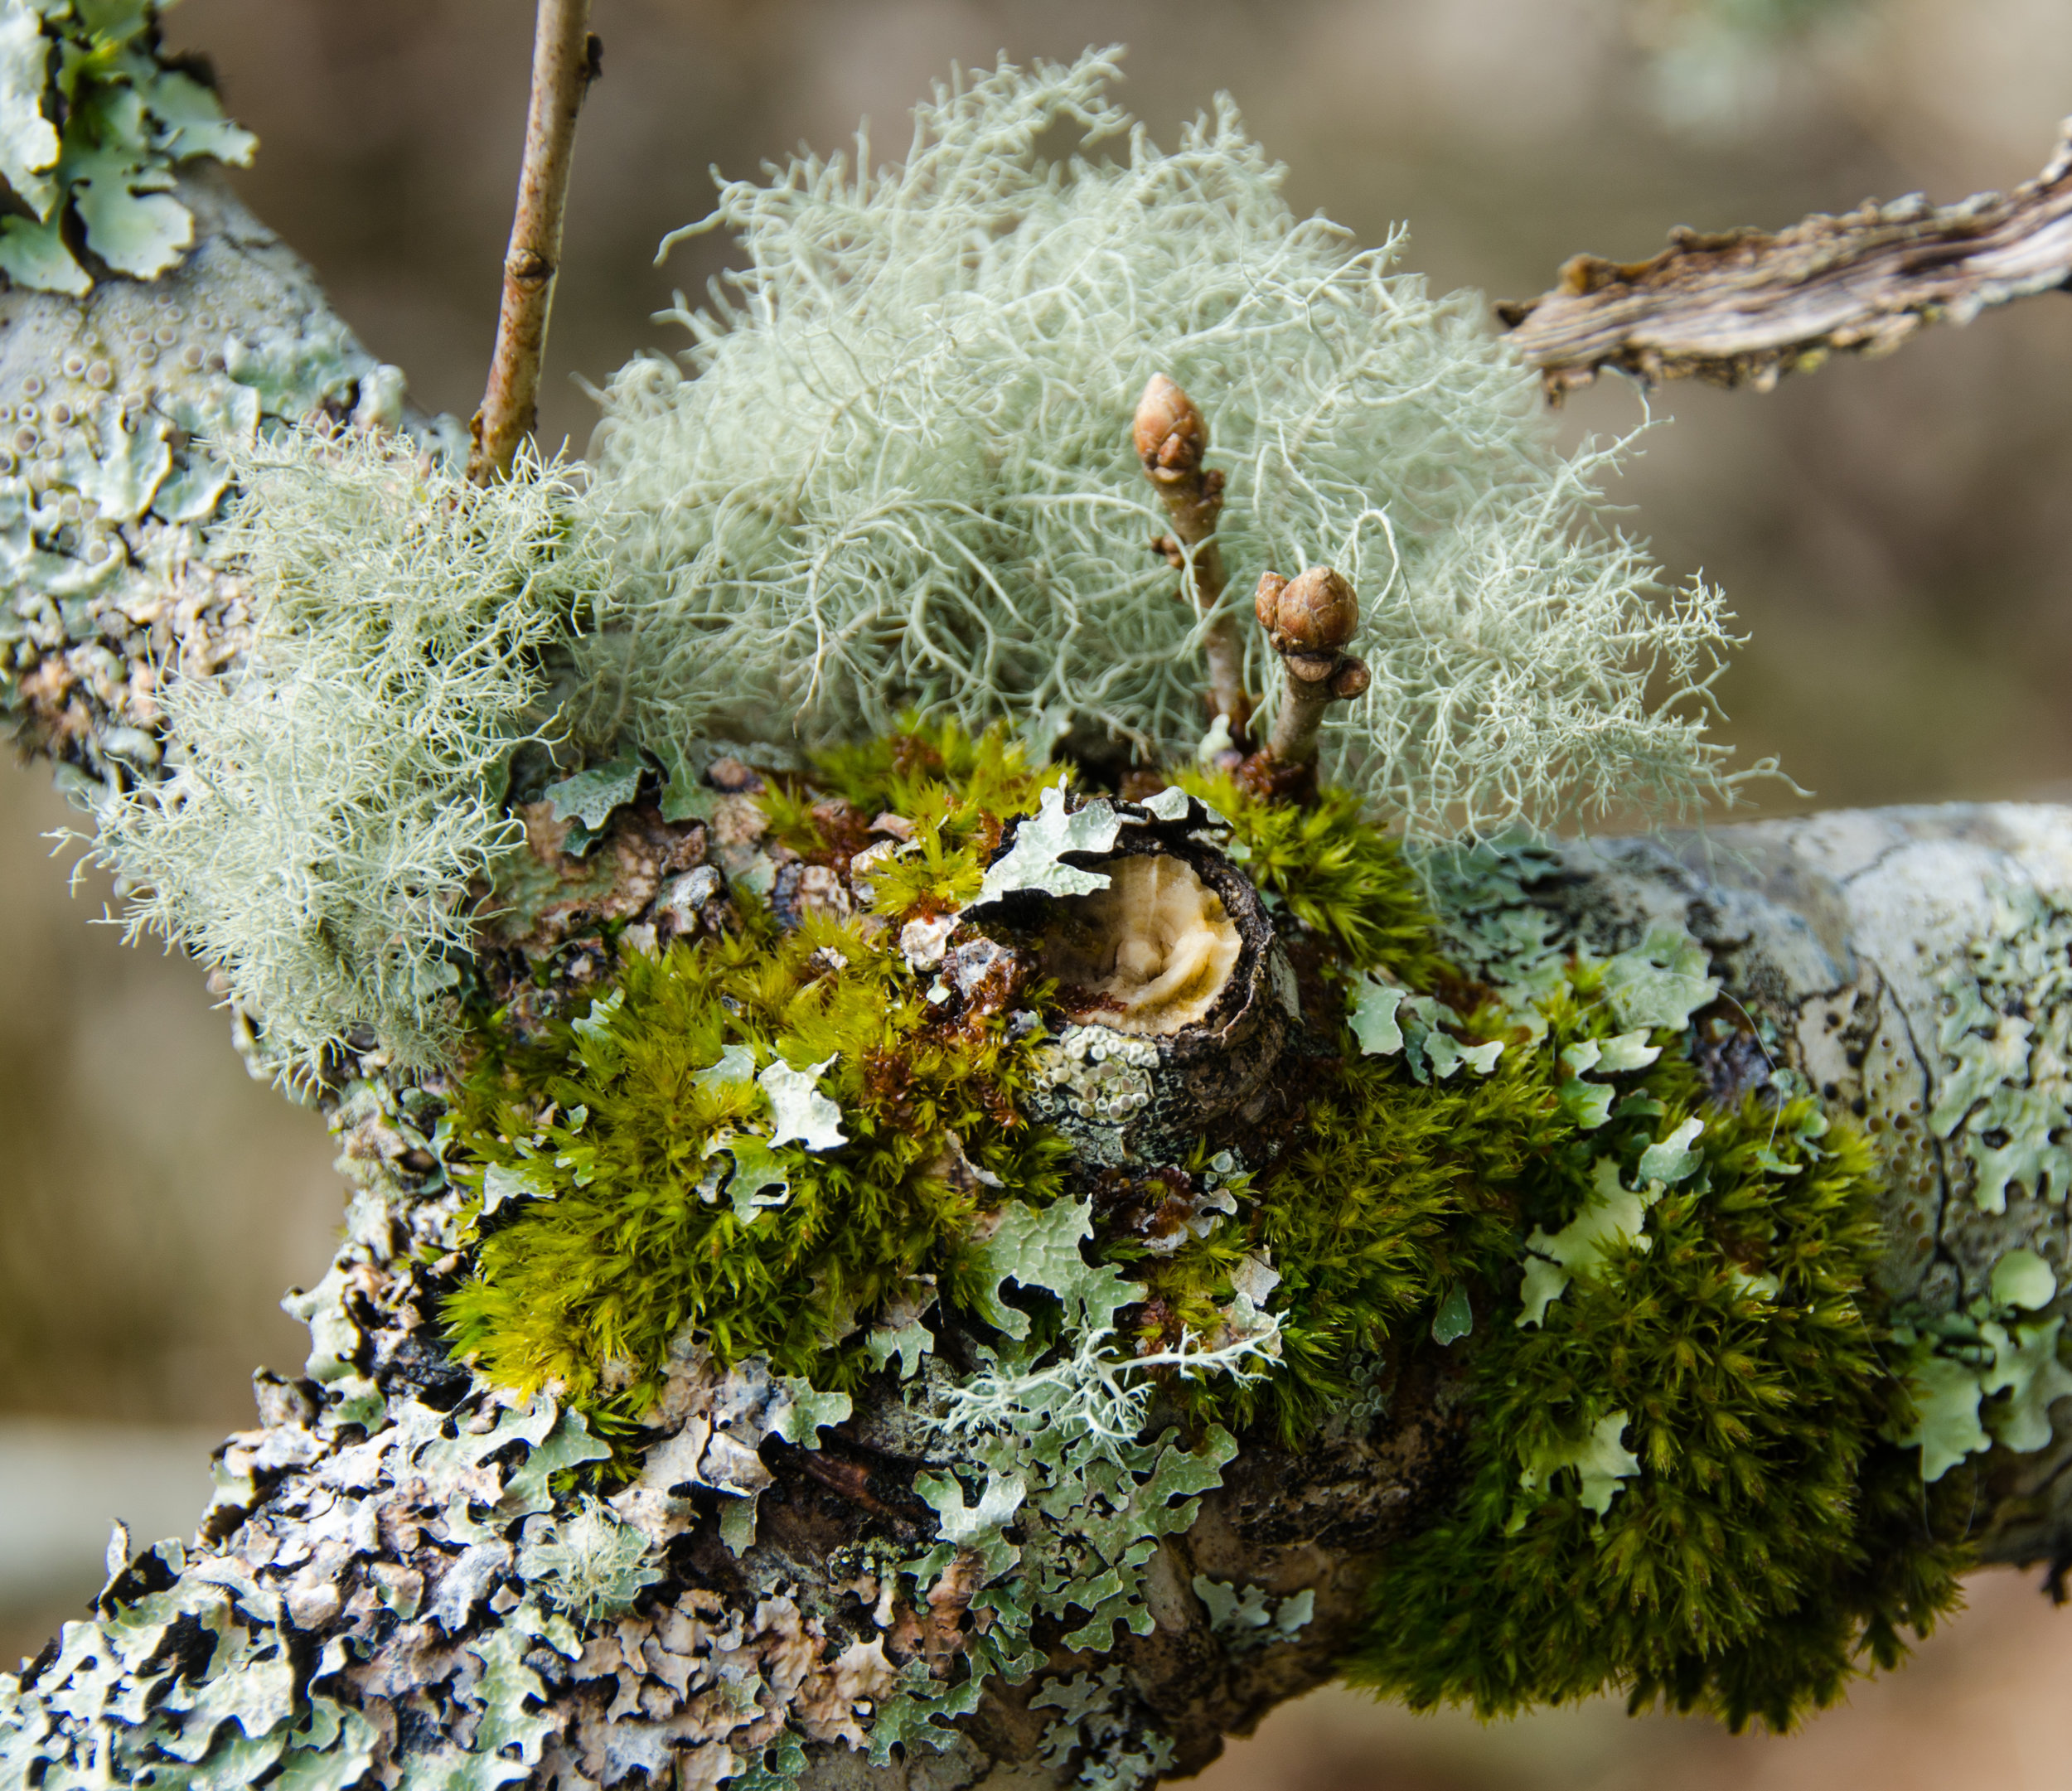 One branch is seen to be supporting at least 3 different species of lichen- jostling for space